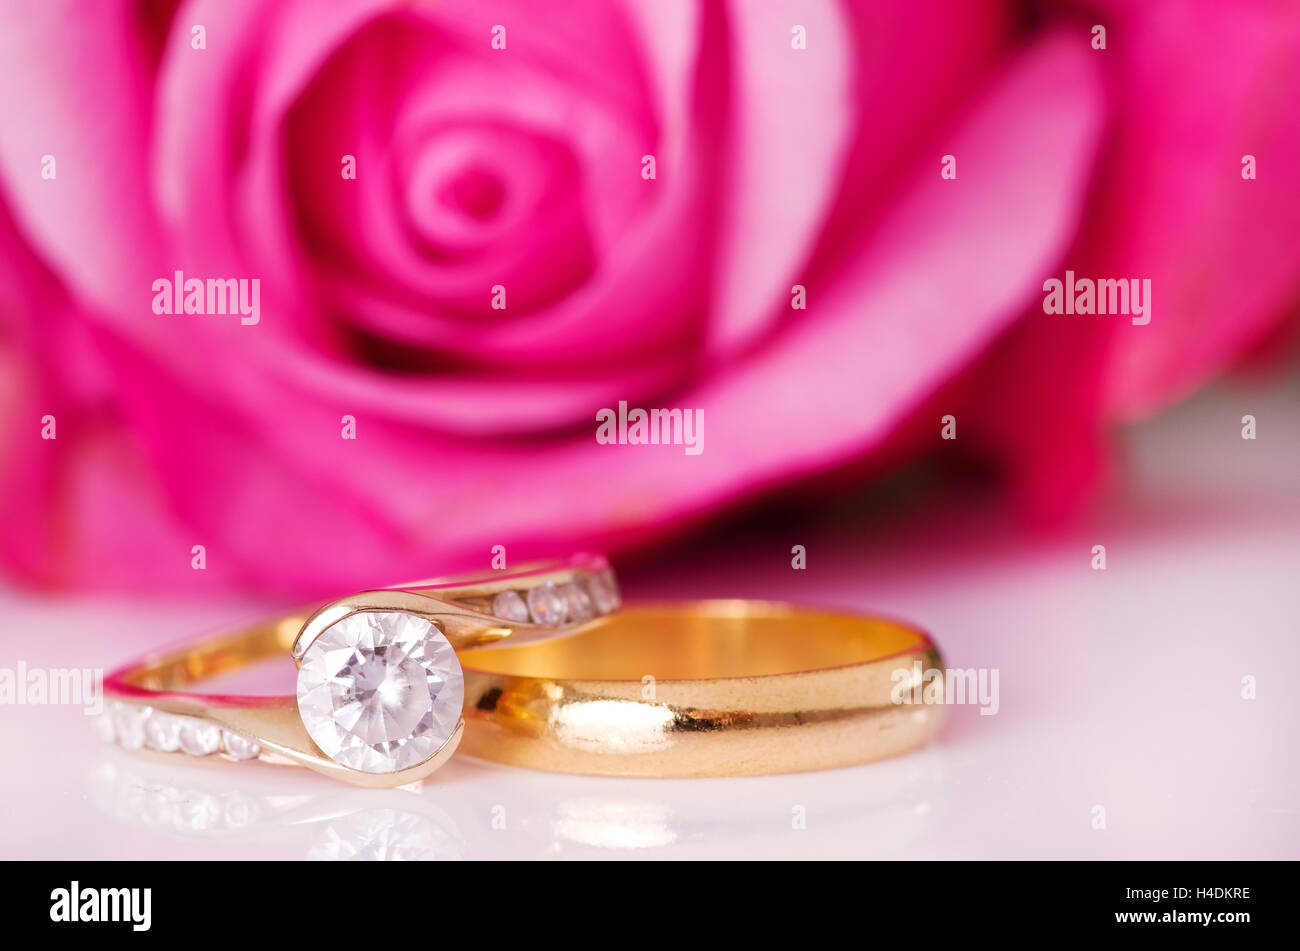 White Gold Diamond Rings Stock Photos & White Gold Diamond Rings ...